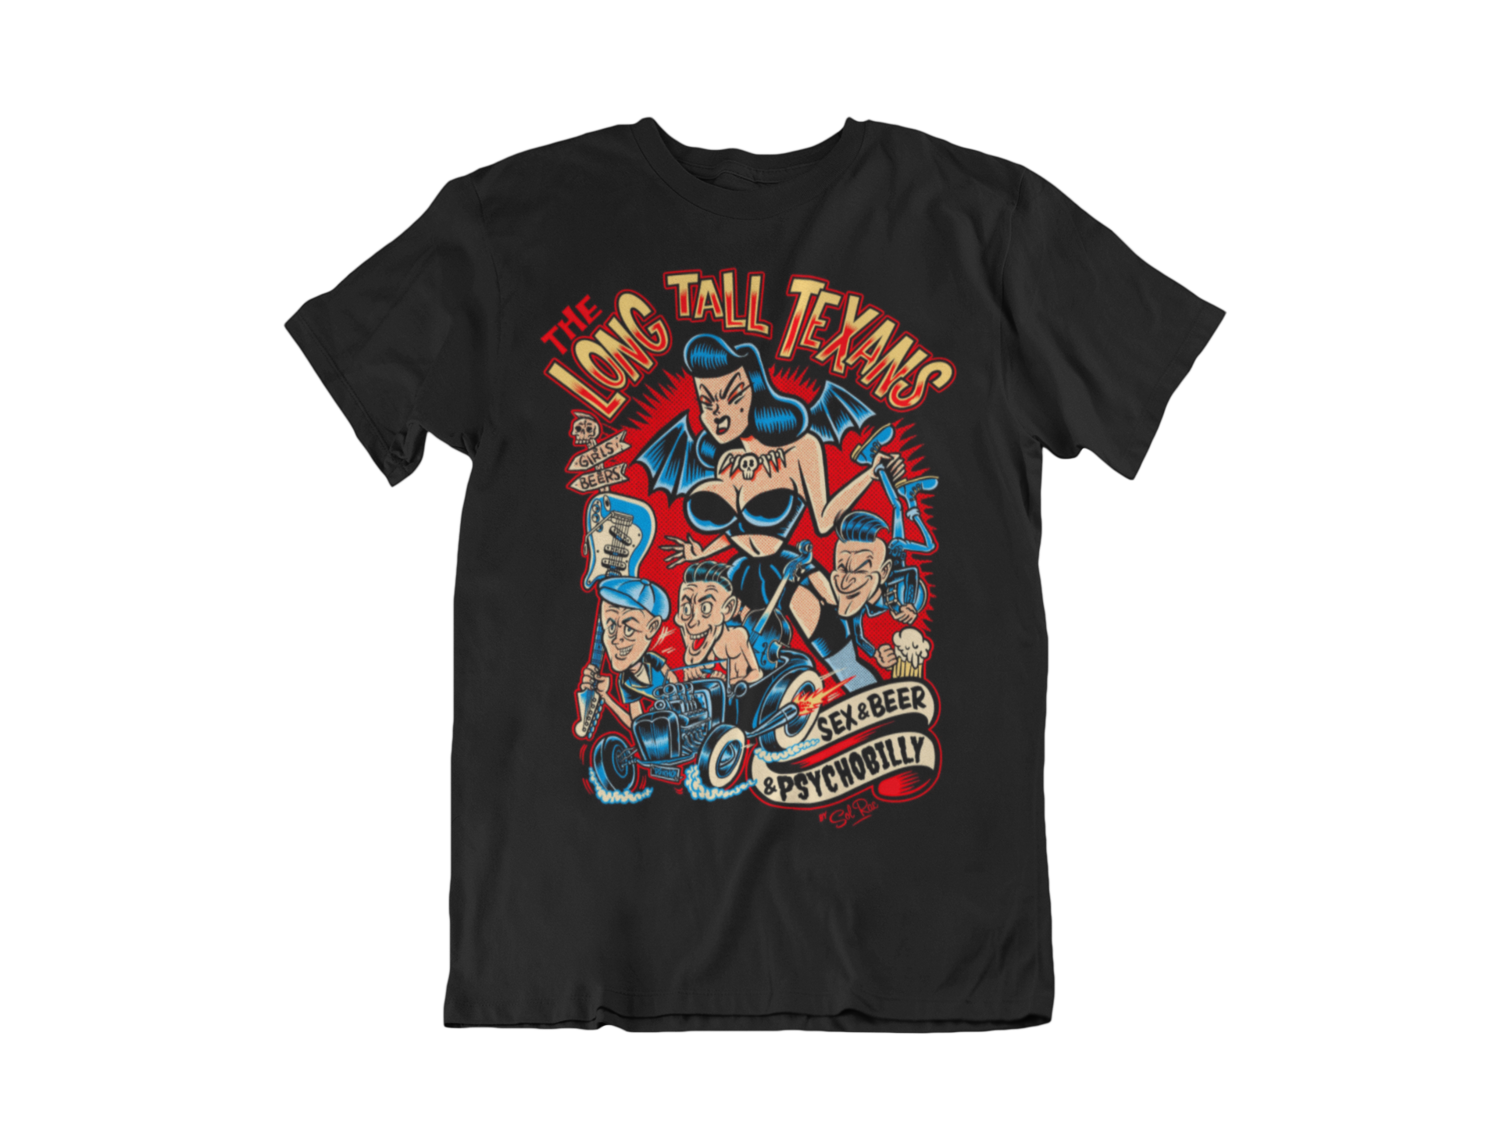 "LONG TALL TEXANS T-SHIRT ""SEX & BEER & PSYCHOBILLY"" for MEN"